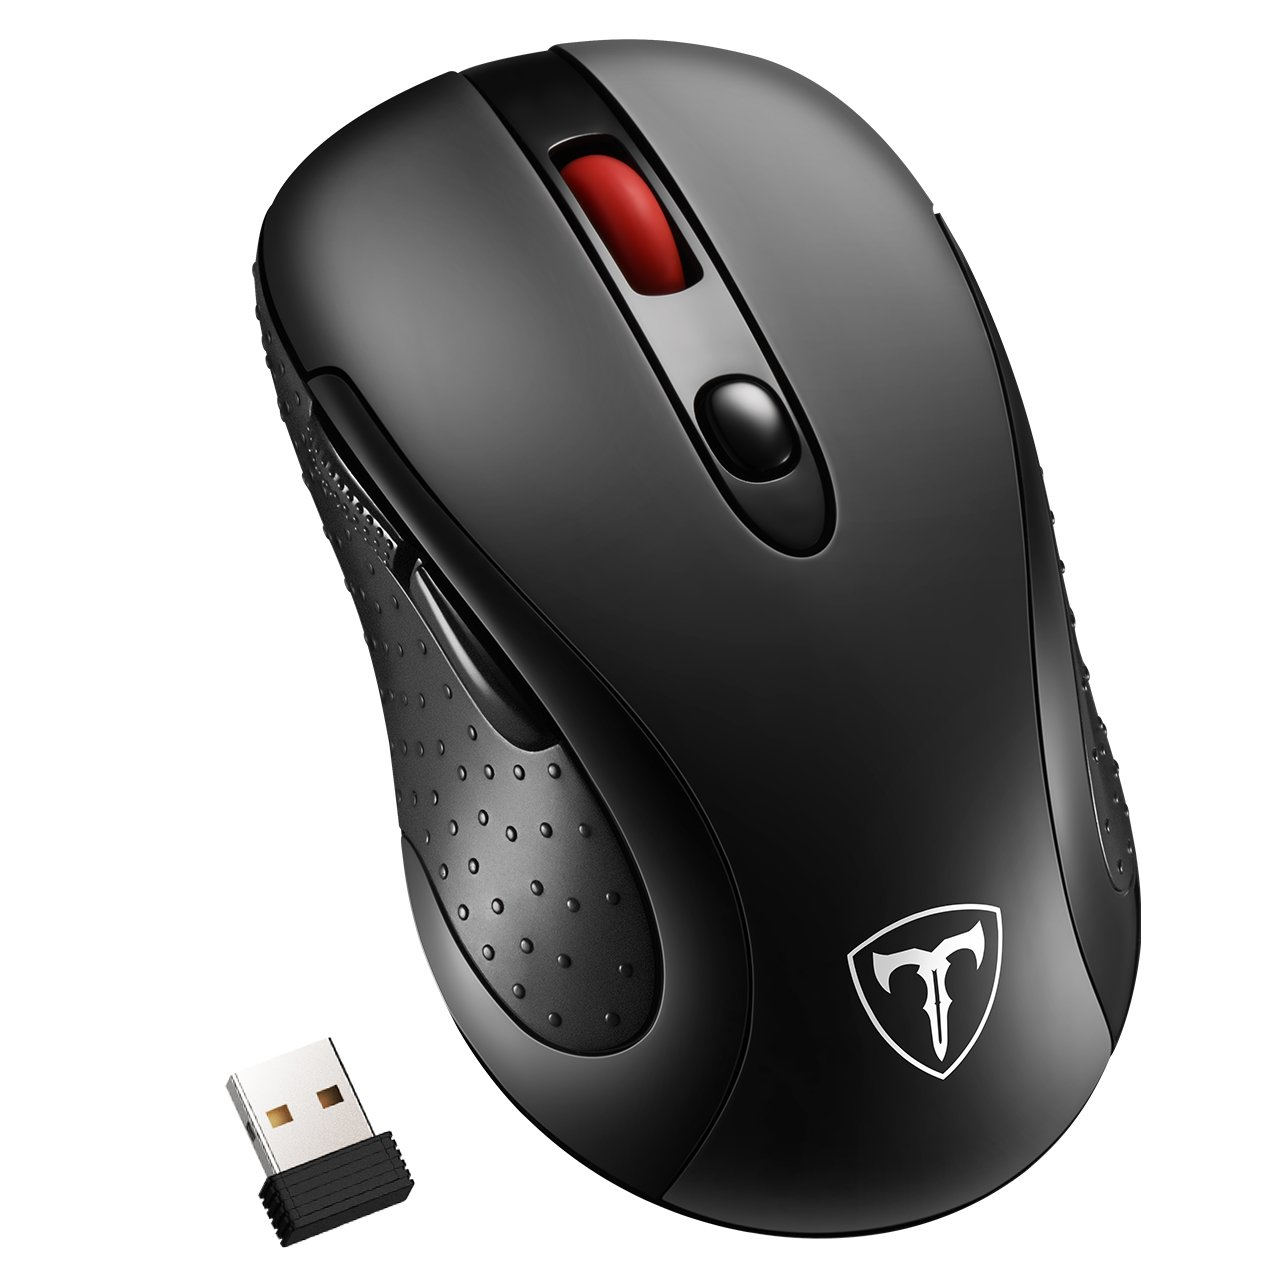 Habor Wireless Mouse, 2.4G Computer Mice Portable Optical Cordless Mouse with USB Receiver, 5 Adjustable DPI Levels, 6 Buttons Wireless Gaming Mouse for Laptop, PC, Macbook - Black